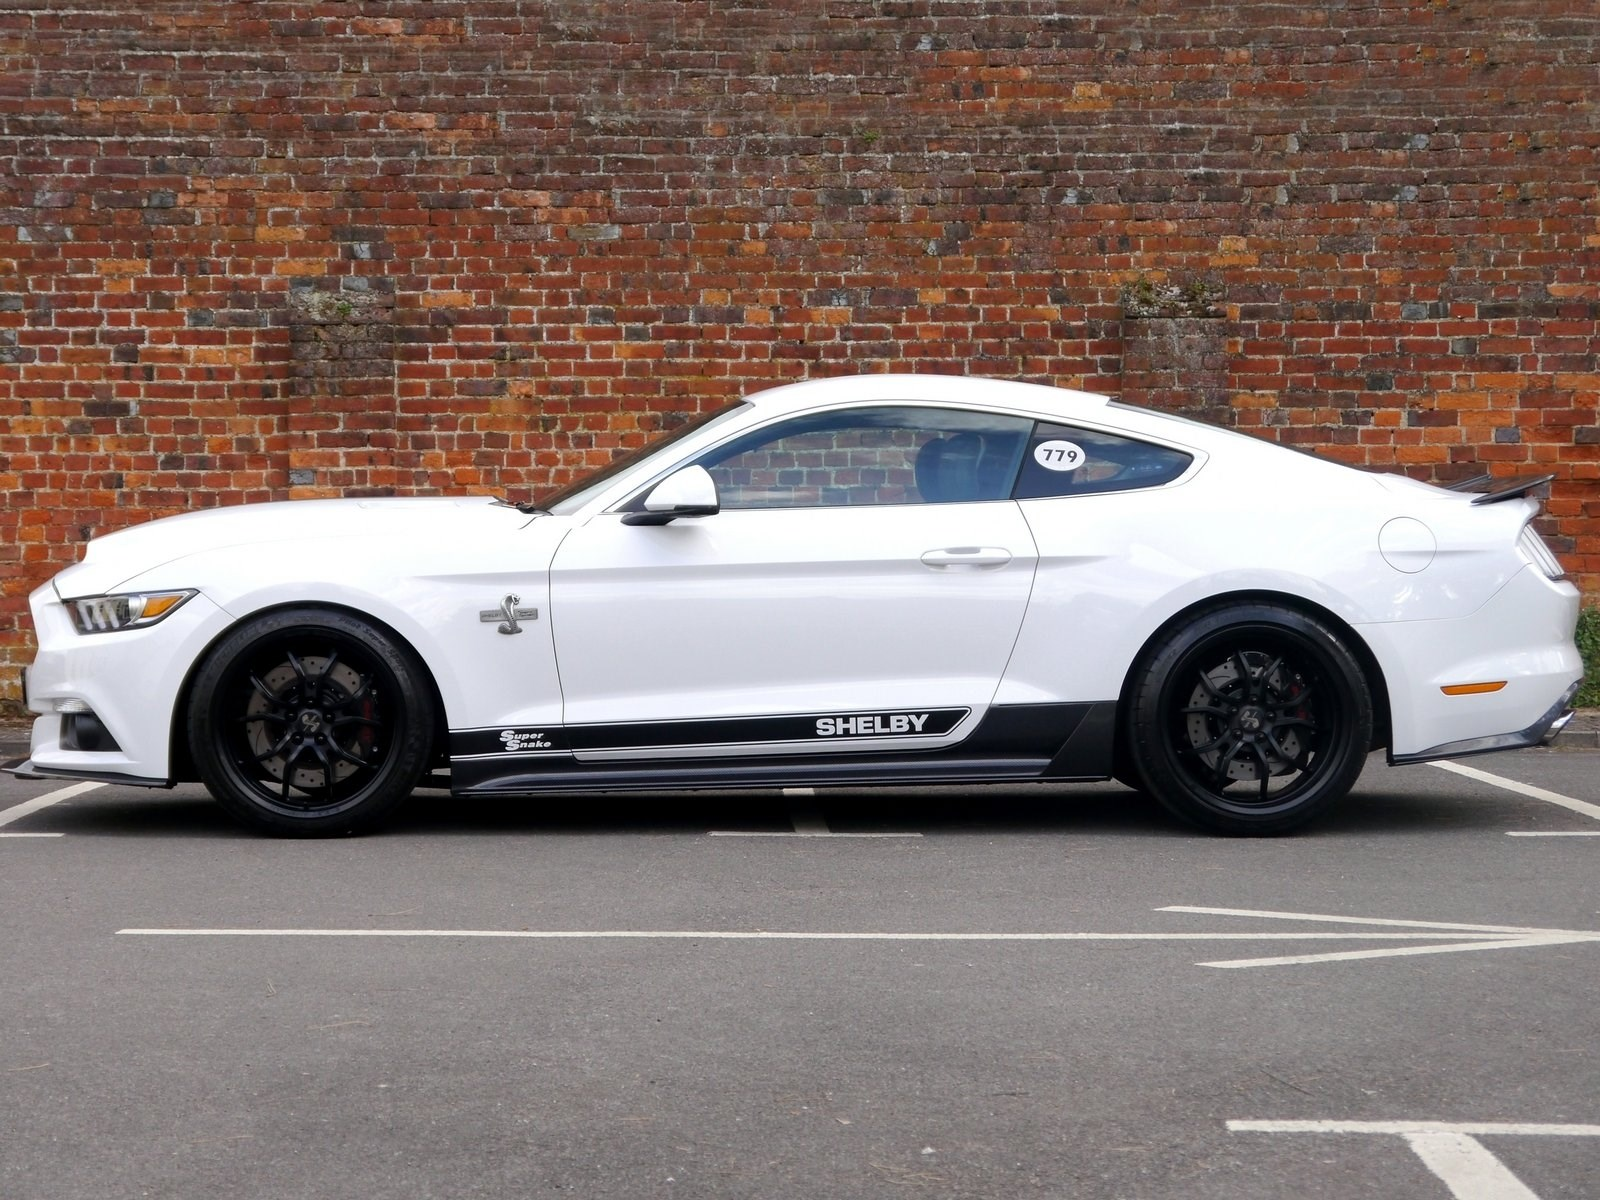 Ford Mustang 5 0 V8 Shelby SuperSnake - 800+ BHP - RHD for Sale